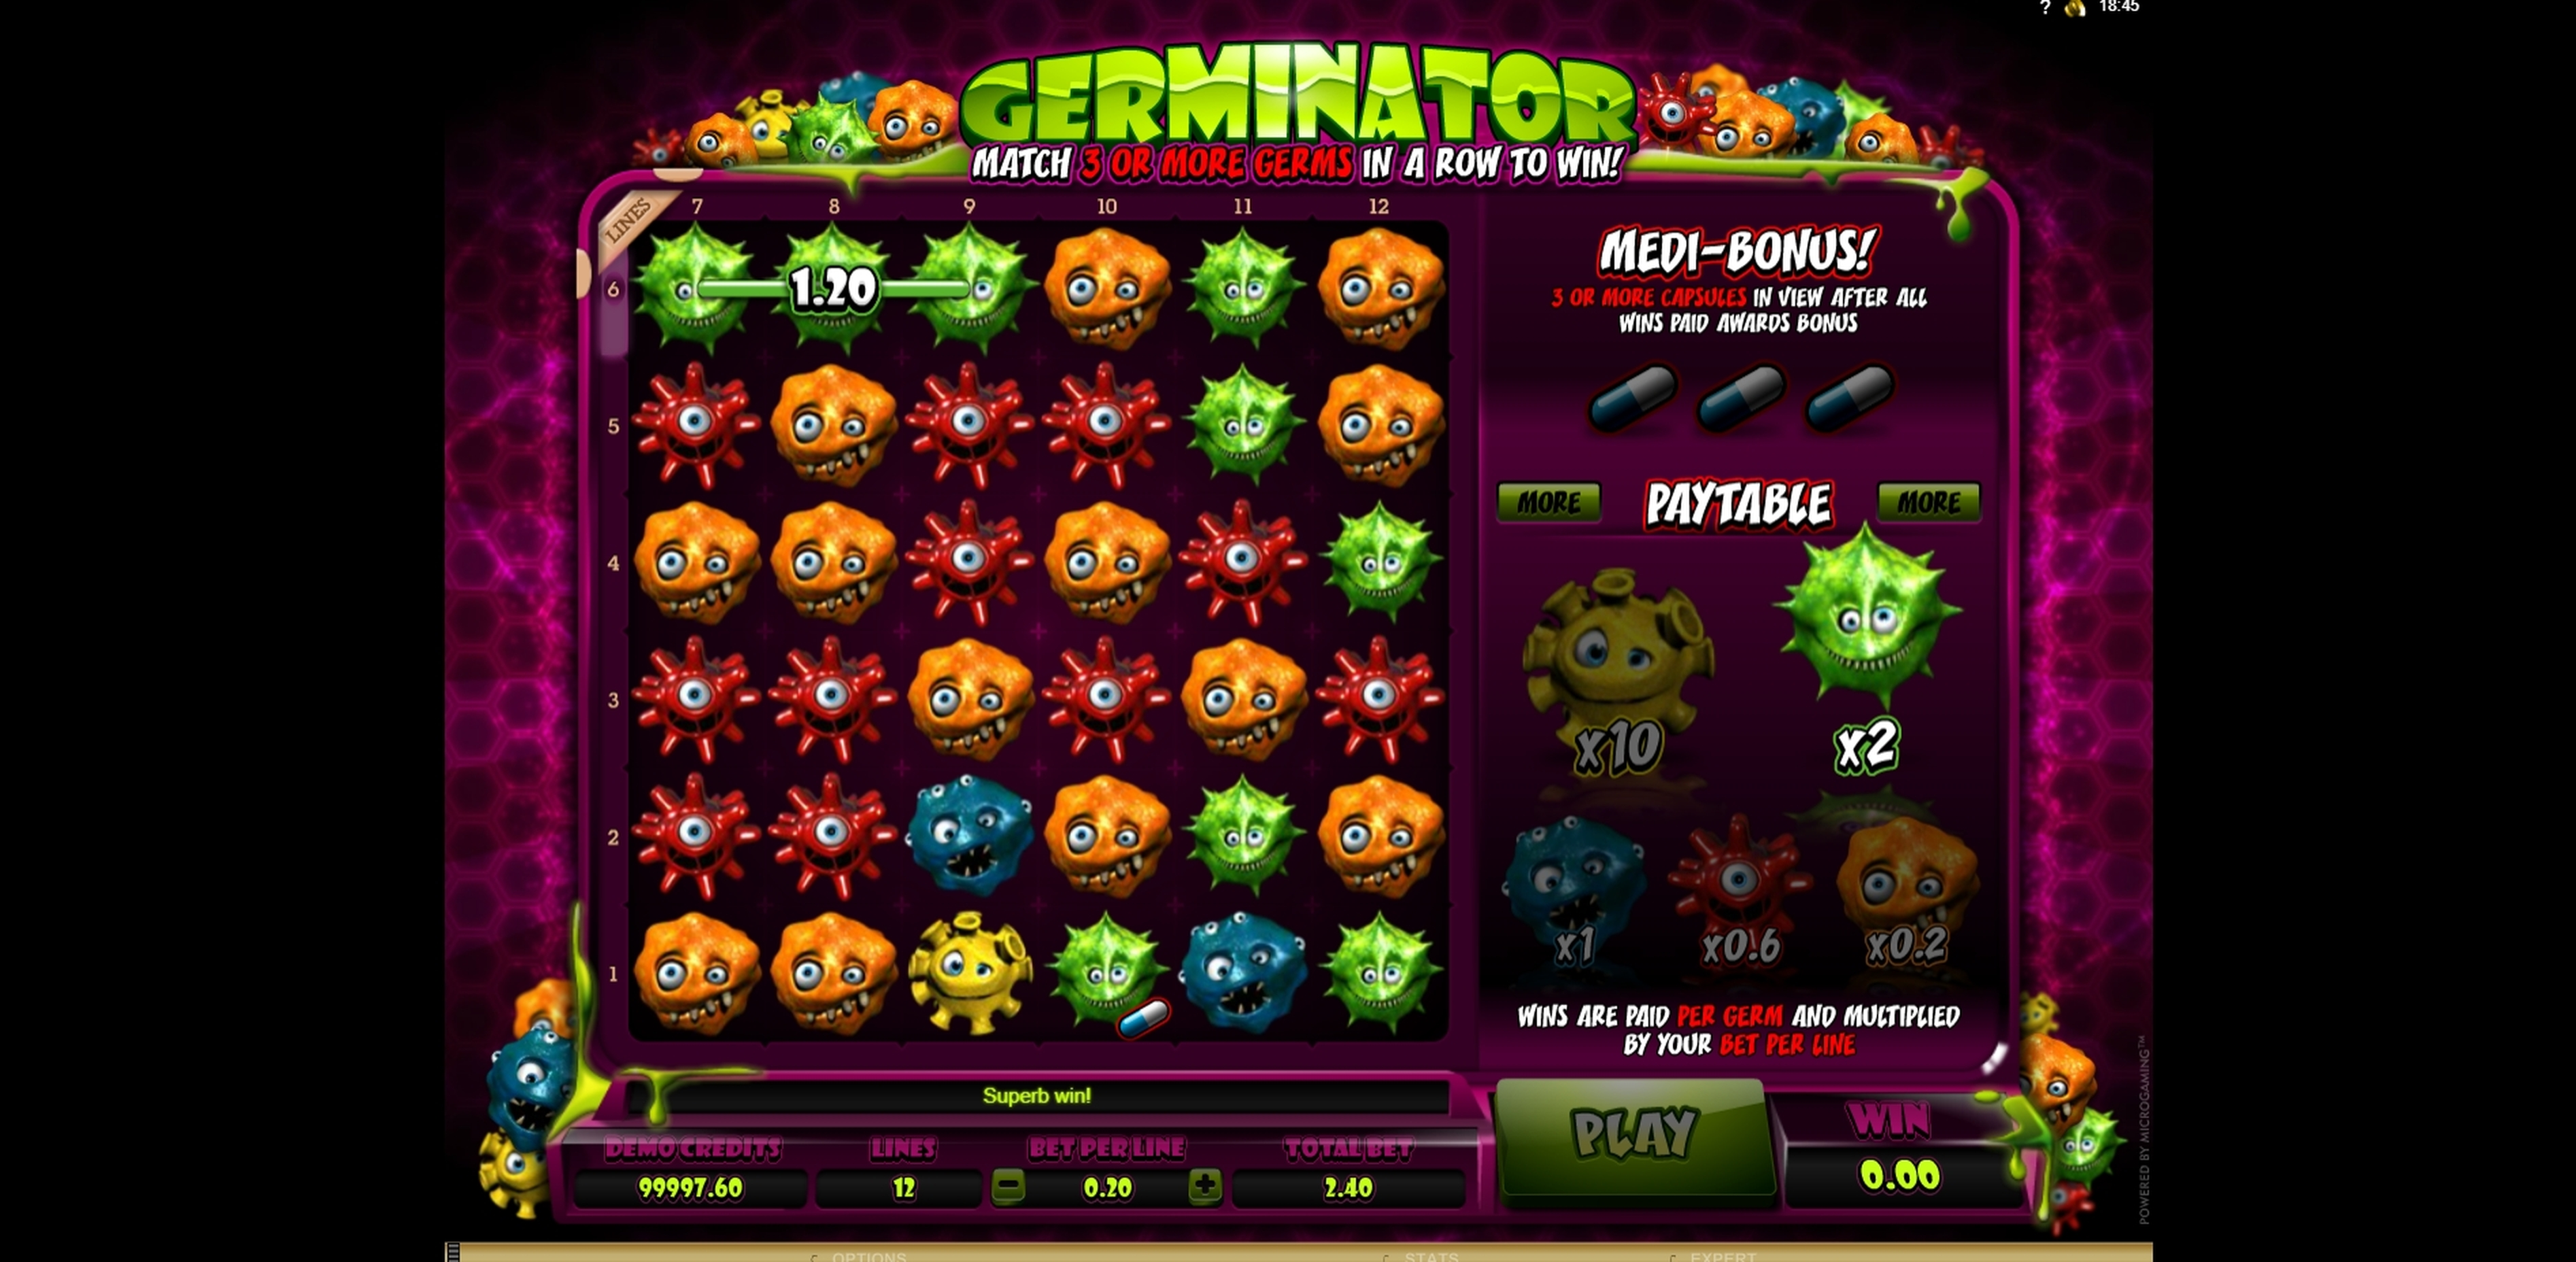 Win Money in Germinator Free Slot Game by Microgaming